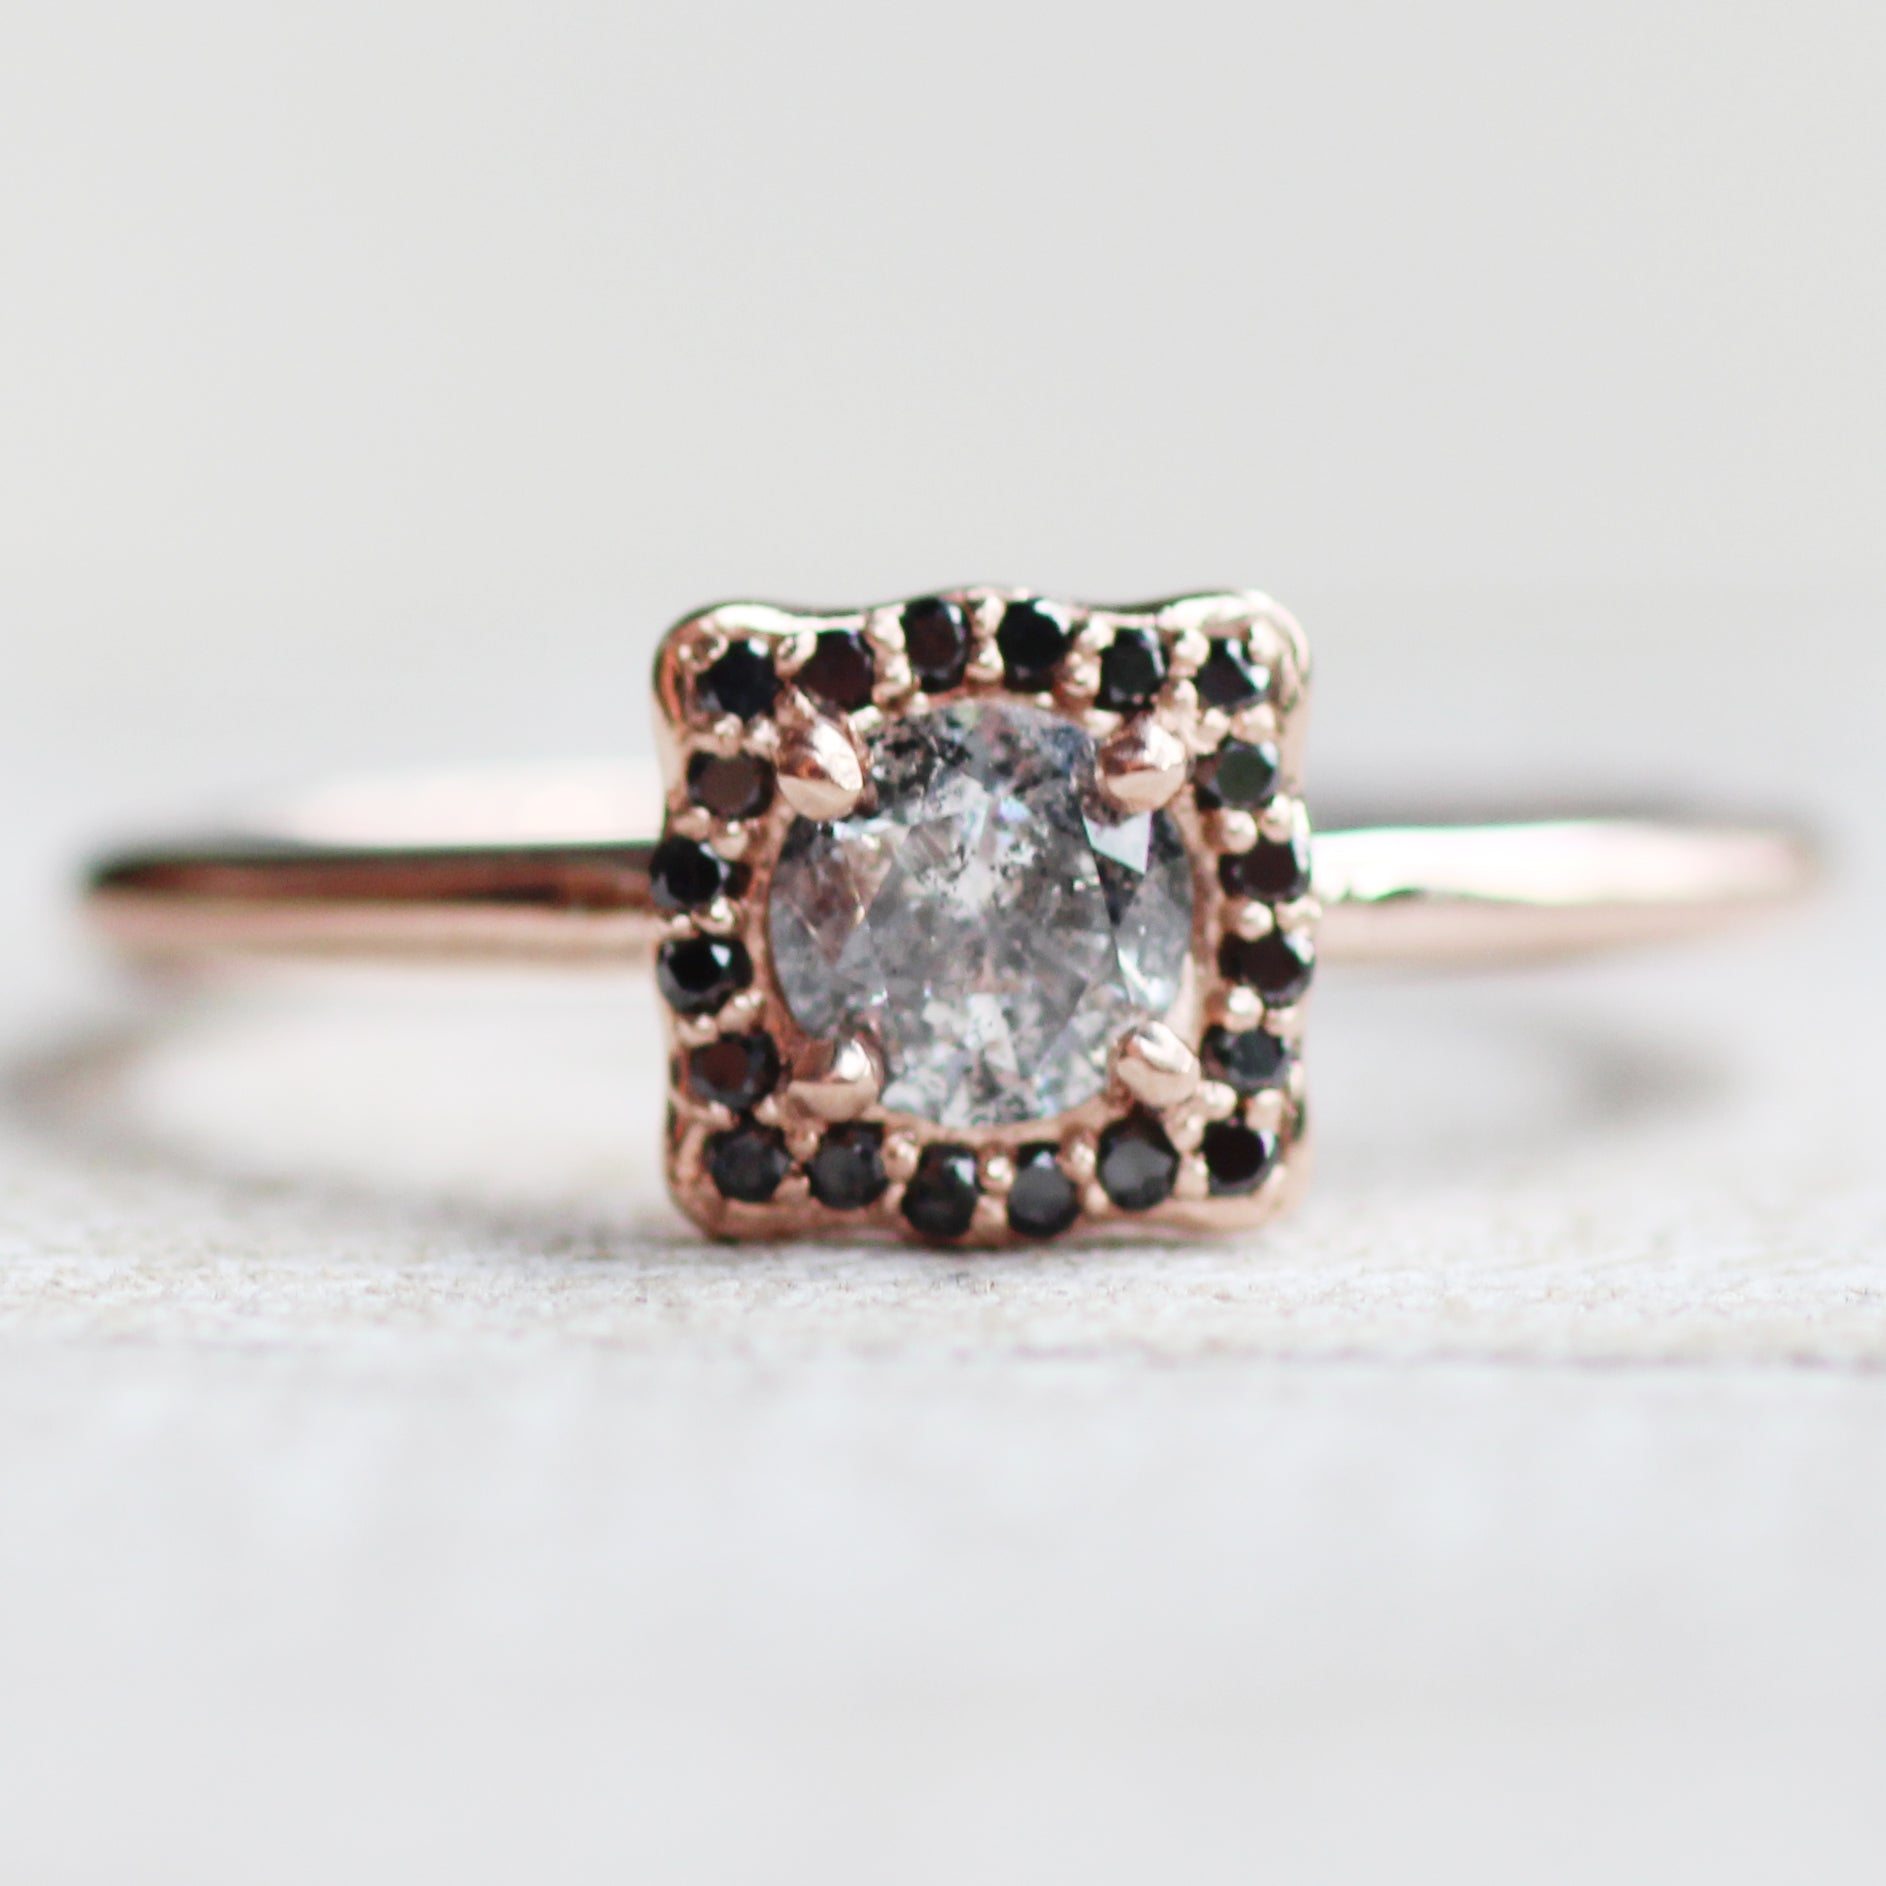 Hannah - Black diamond halo with dark gray celestial diamond - 10k rose gold - Ready to size and ship